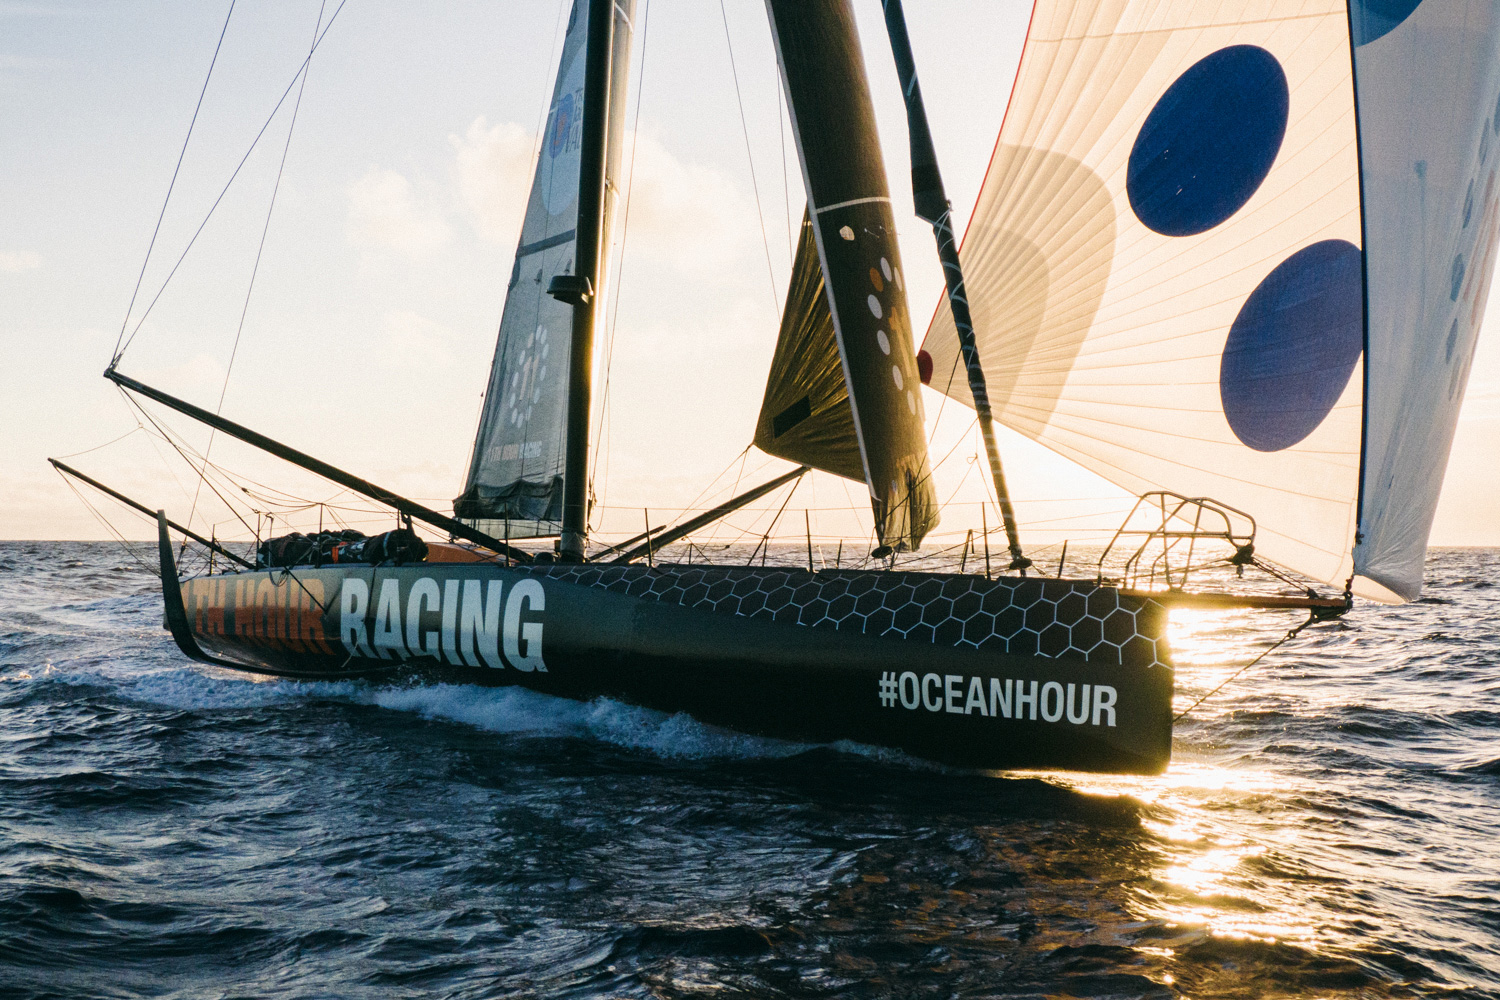 11th hour racing sailing title sponsor